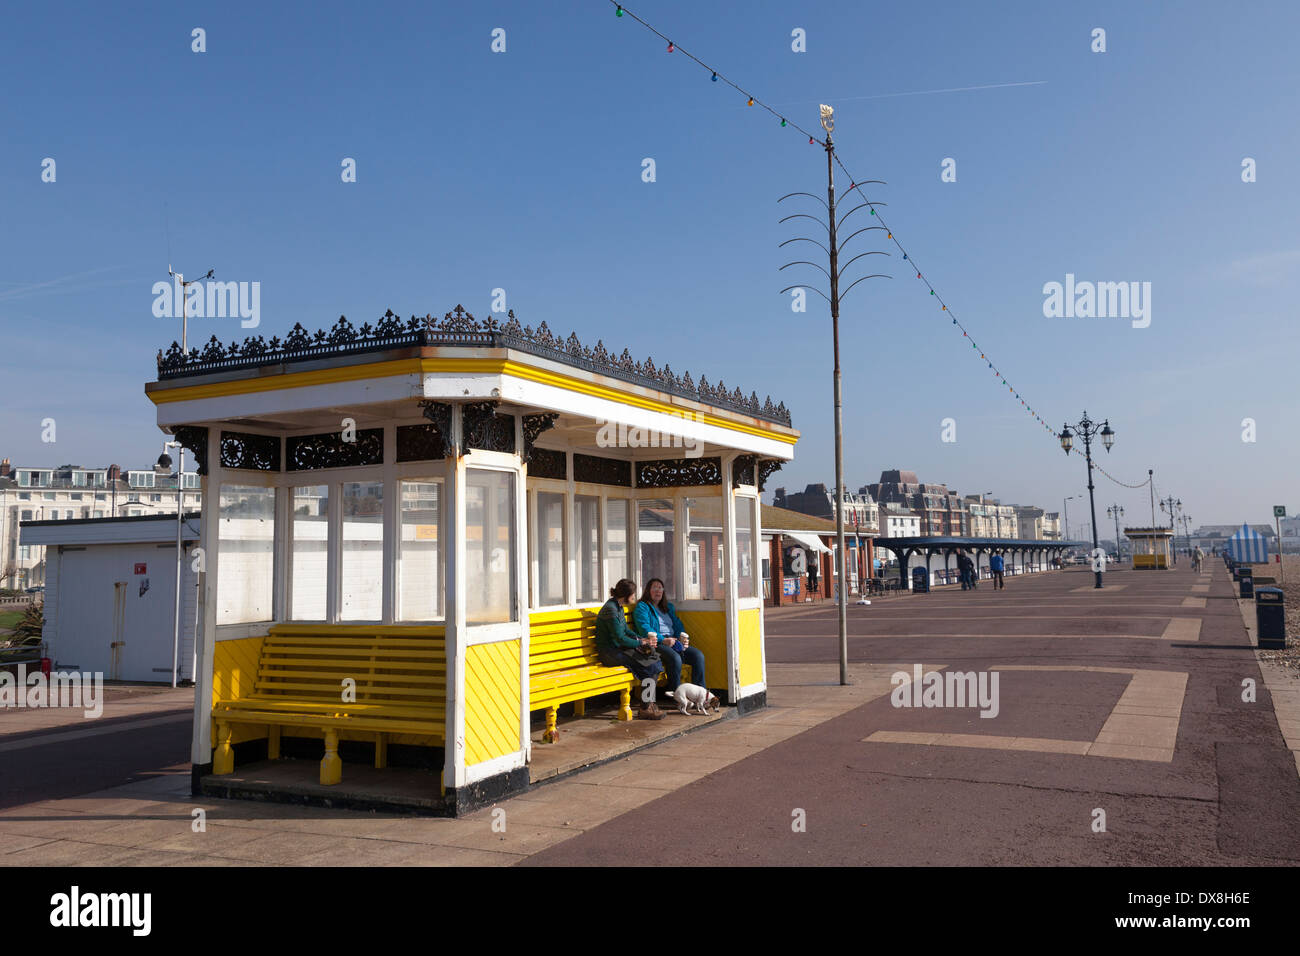 People resting in a promenade shelter at Southsea. - Stock Image